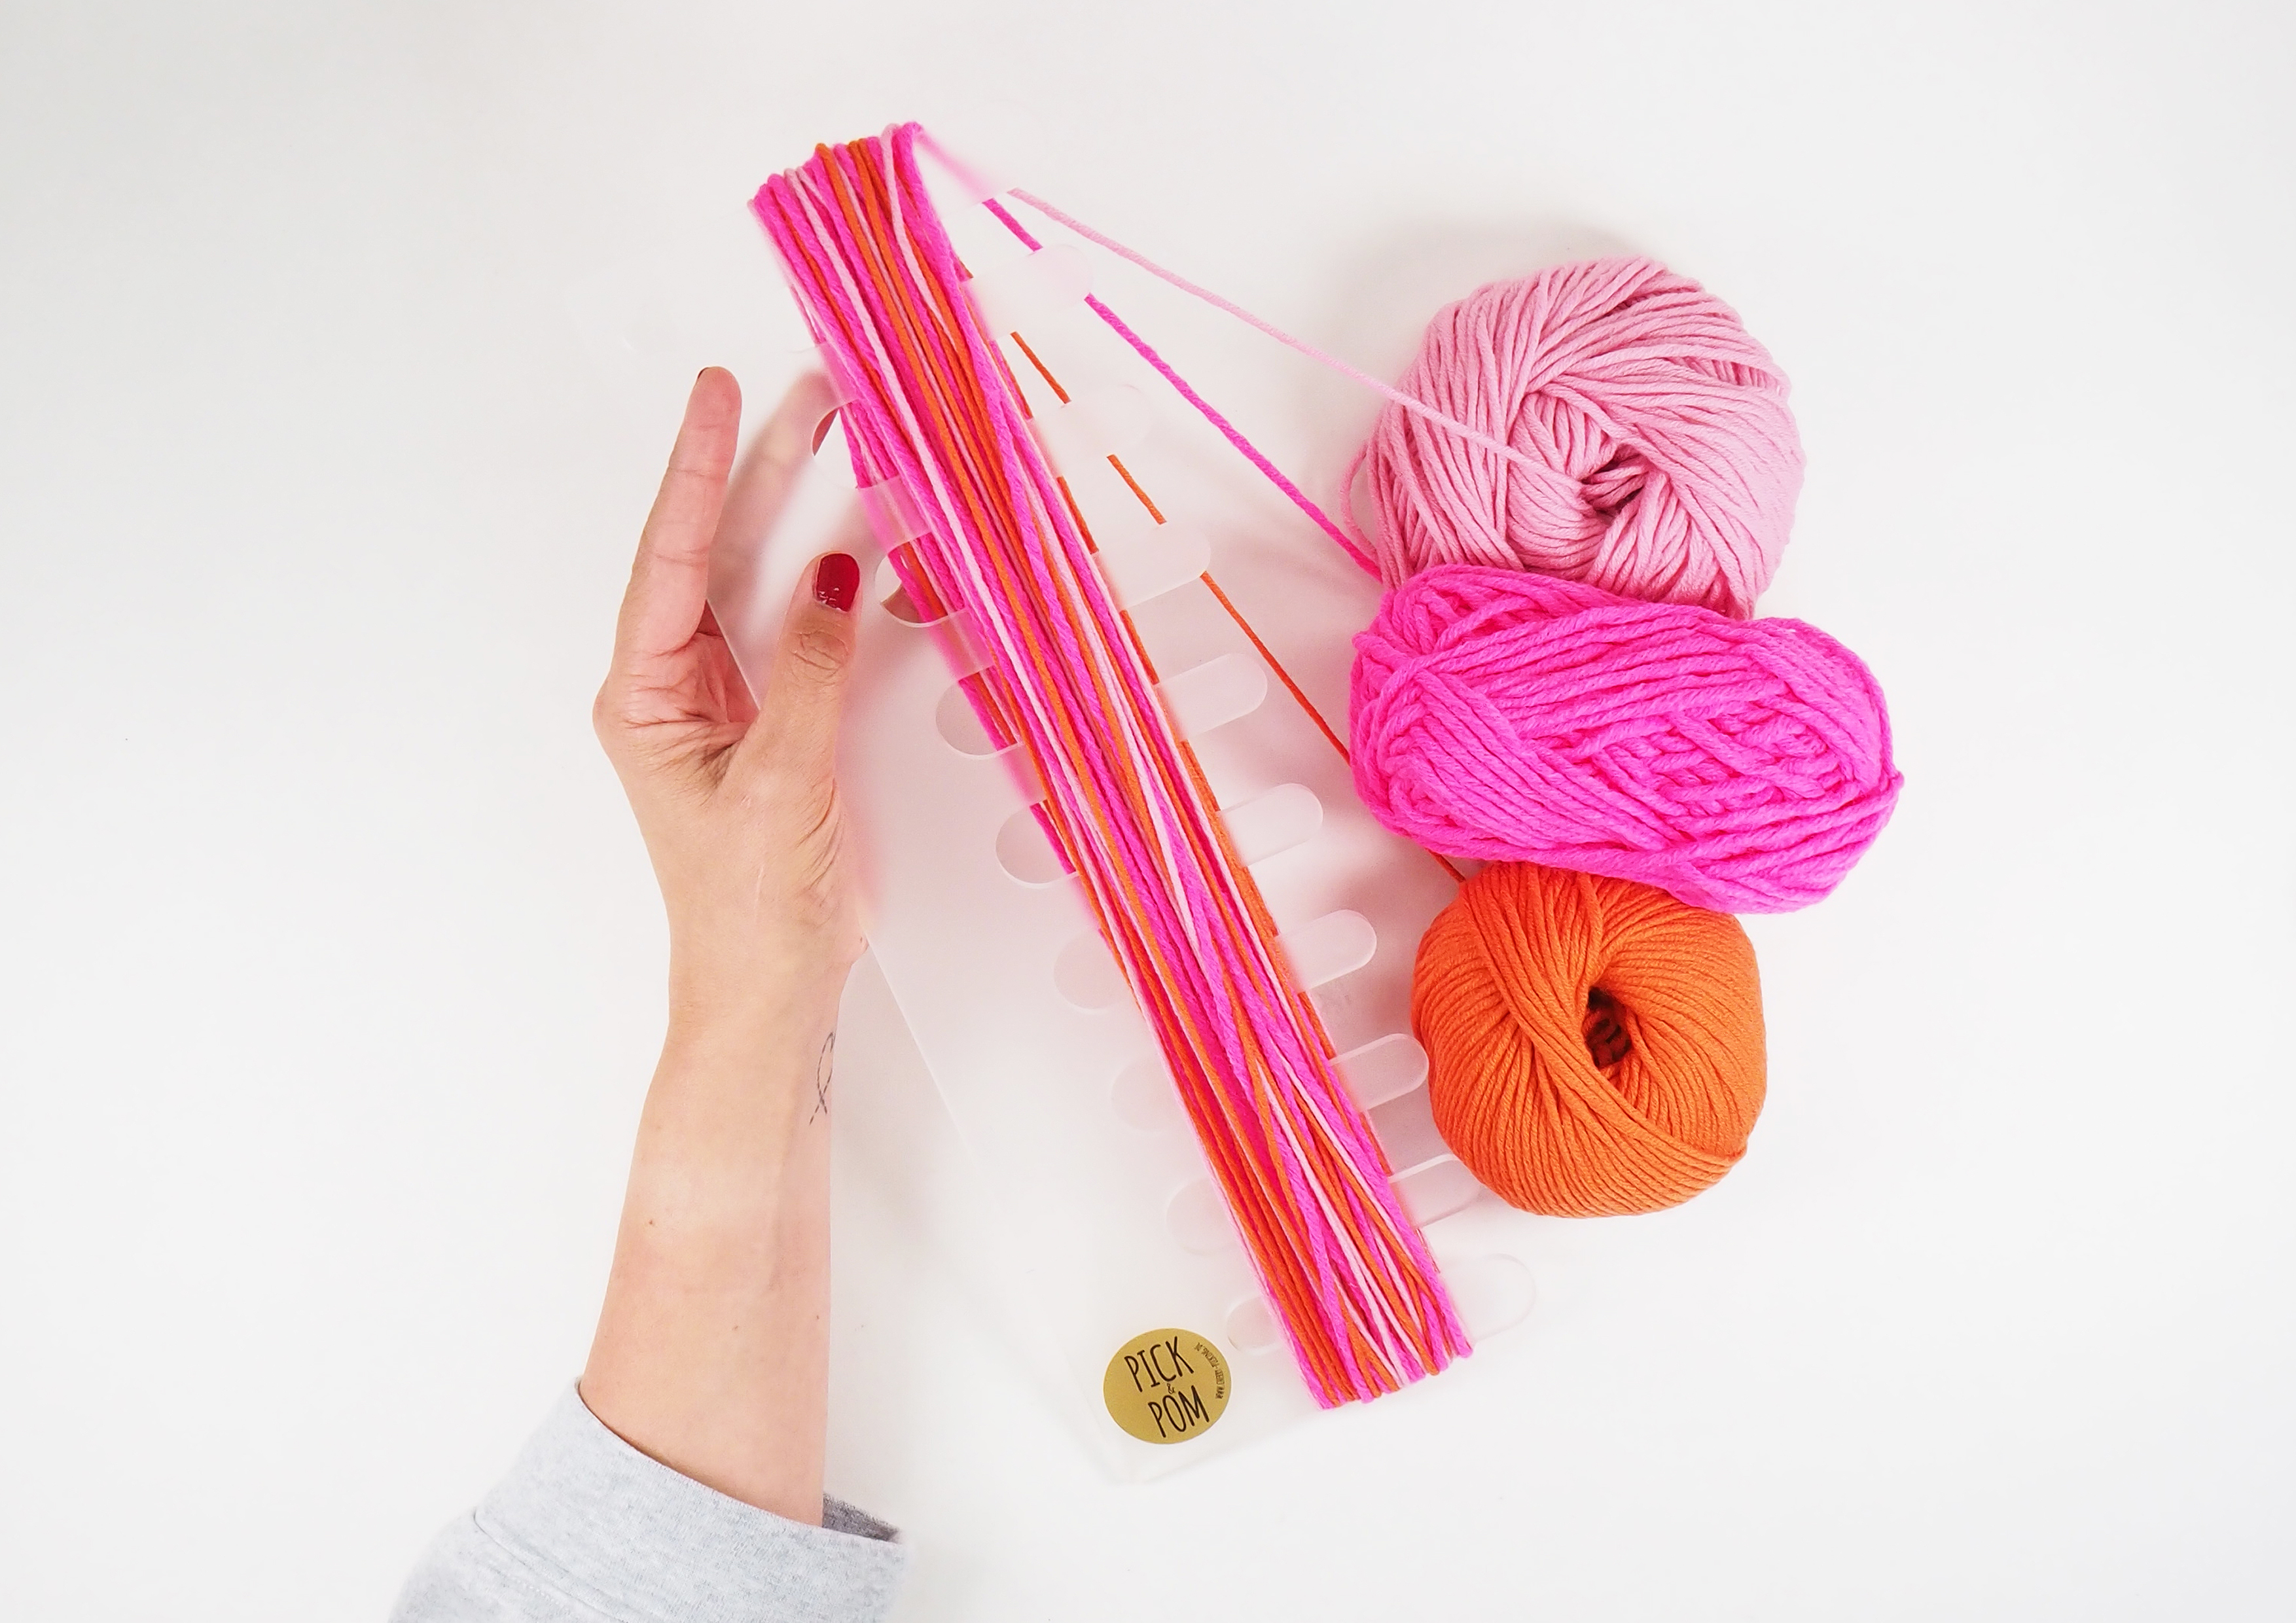 Pick & Pom - nine pompons at a stroke! It has never been so easy to make so many pompons in the shortest time possible.